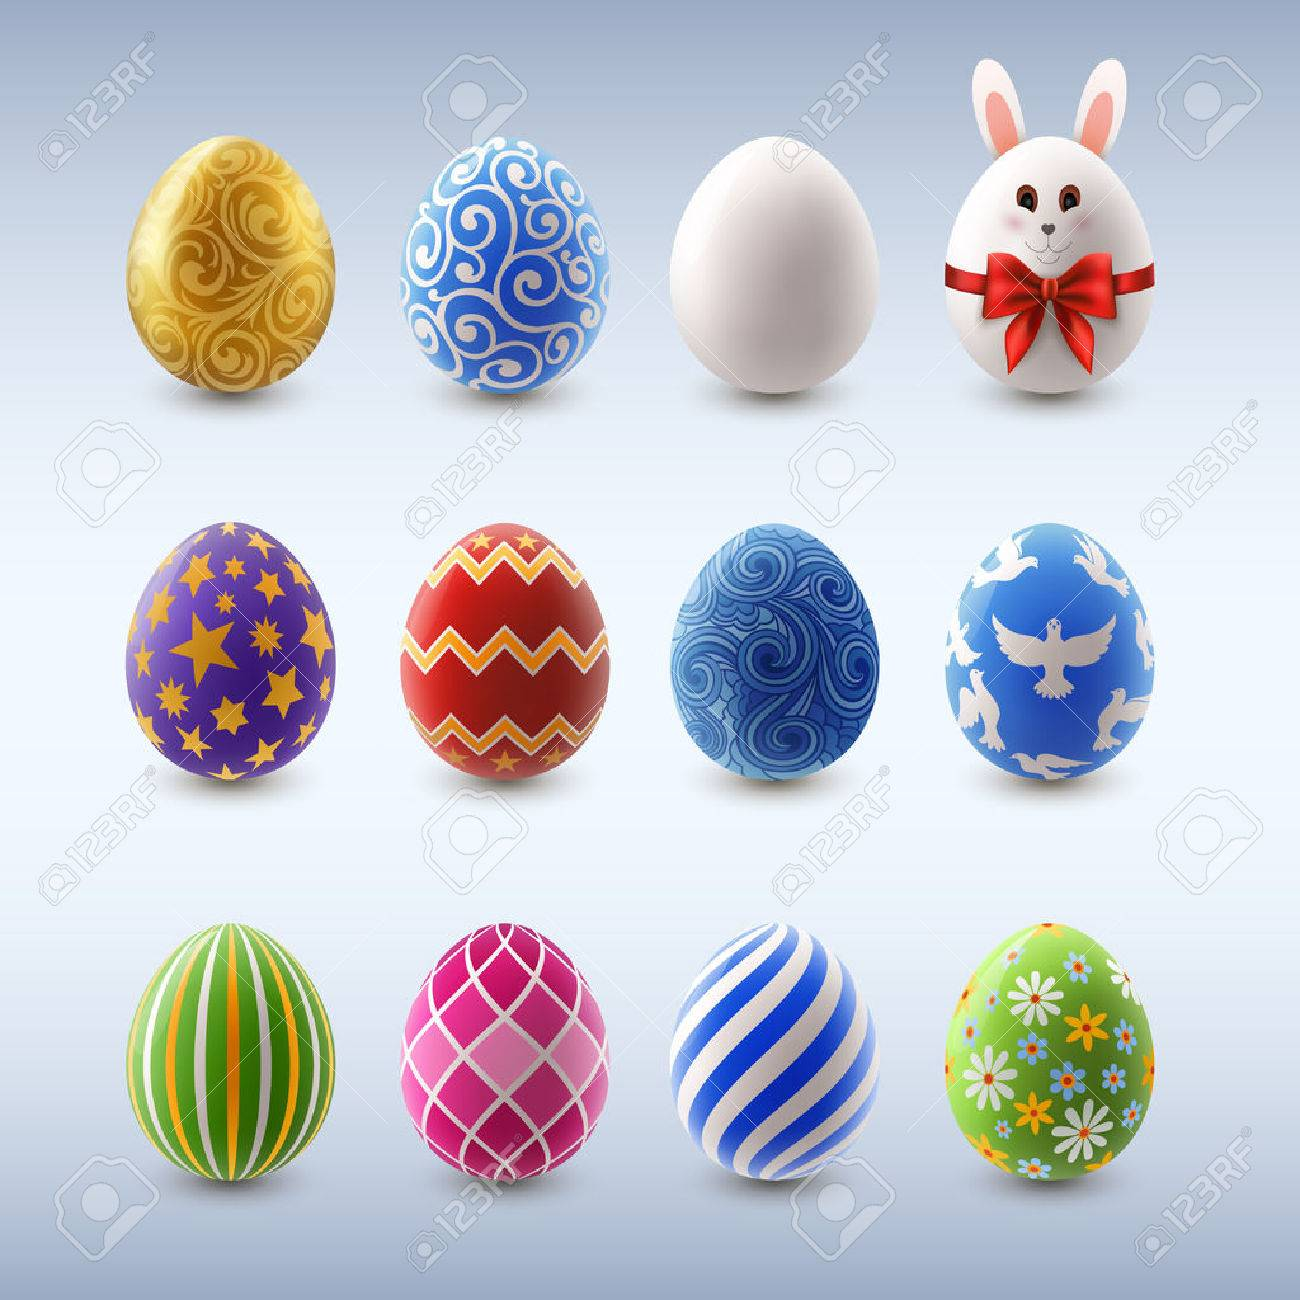 Set Of Colorful Decorated Easter Eggs Eps 10 Contains Transparency